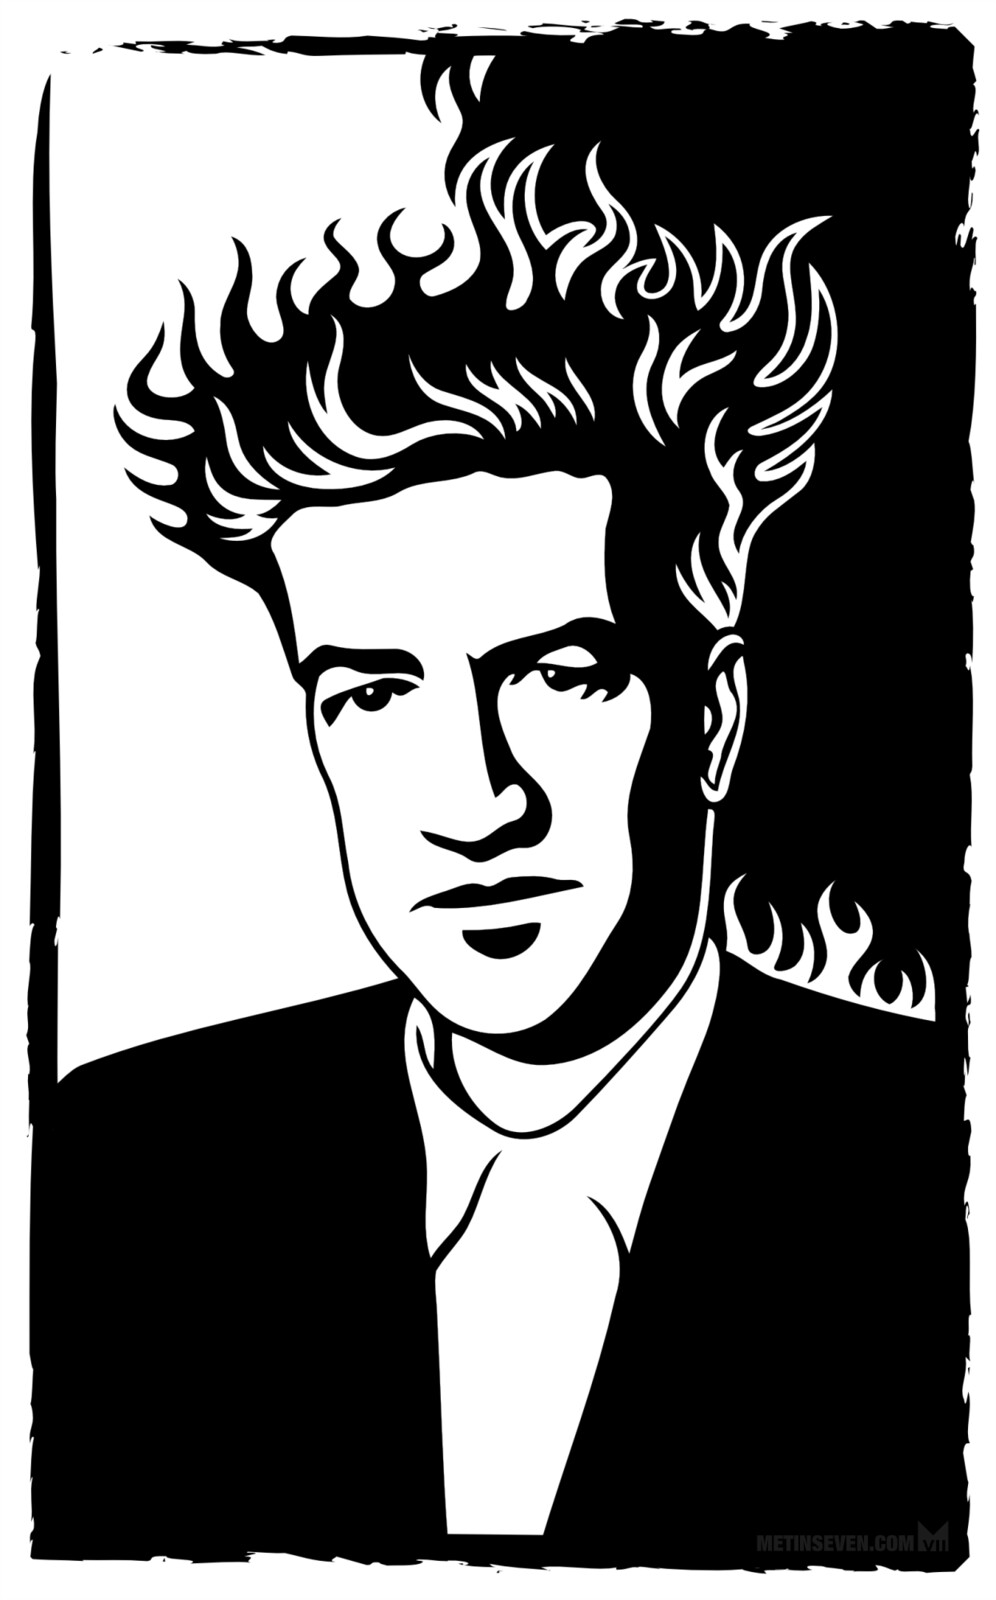 Portrait of David Lynch, the Picasso of film